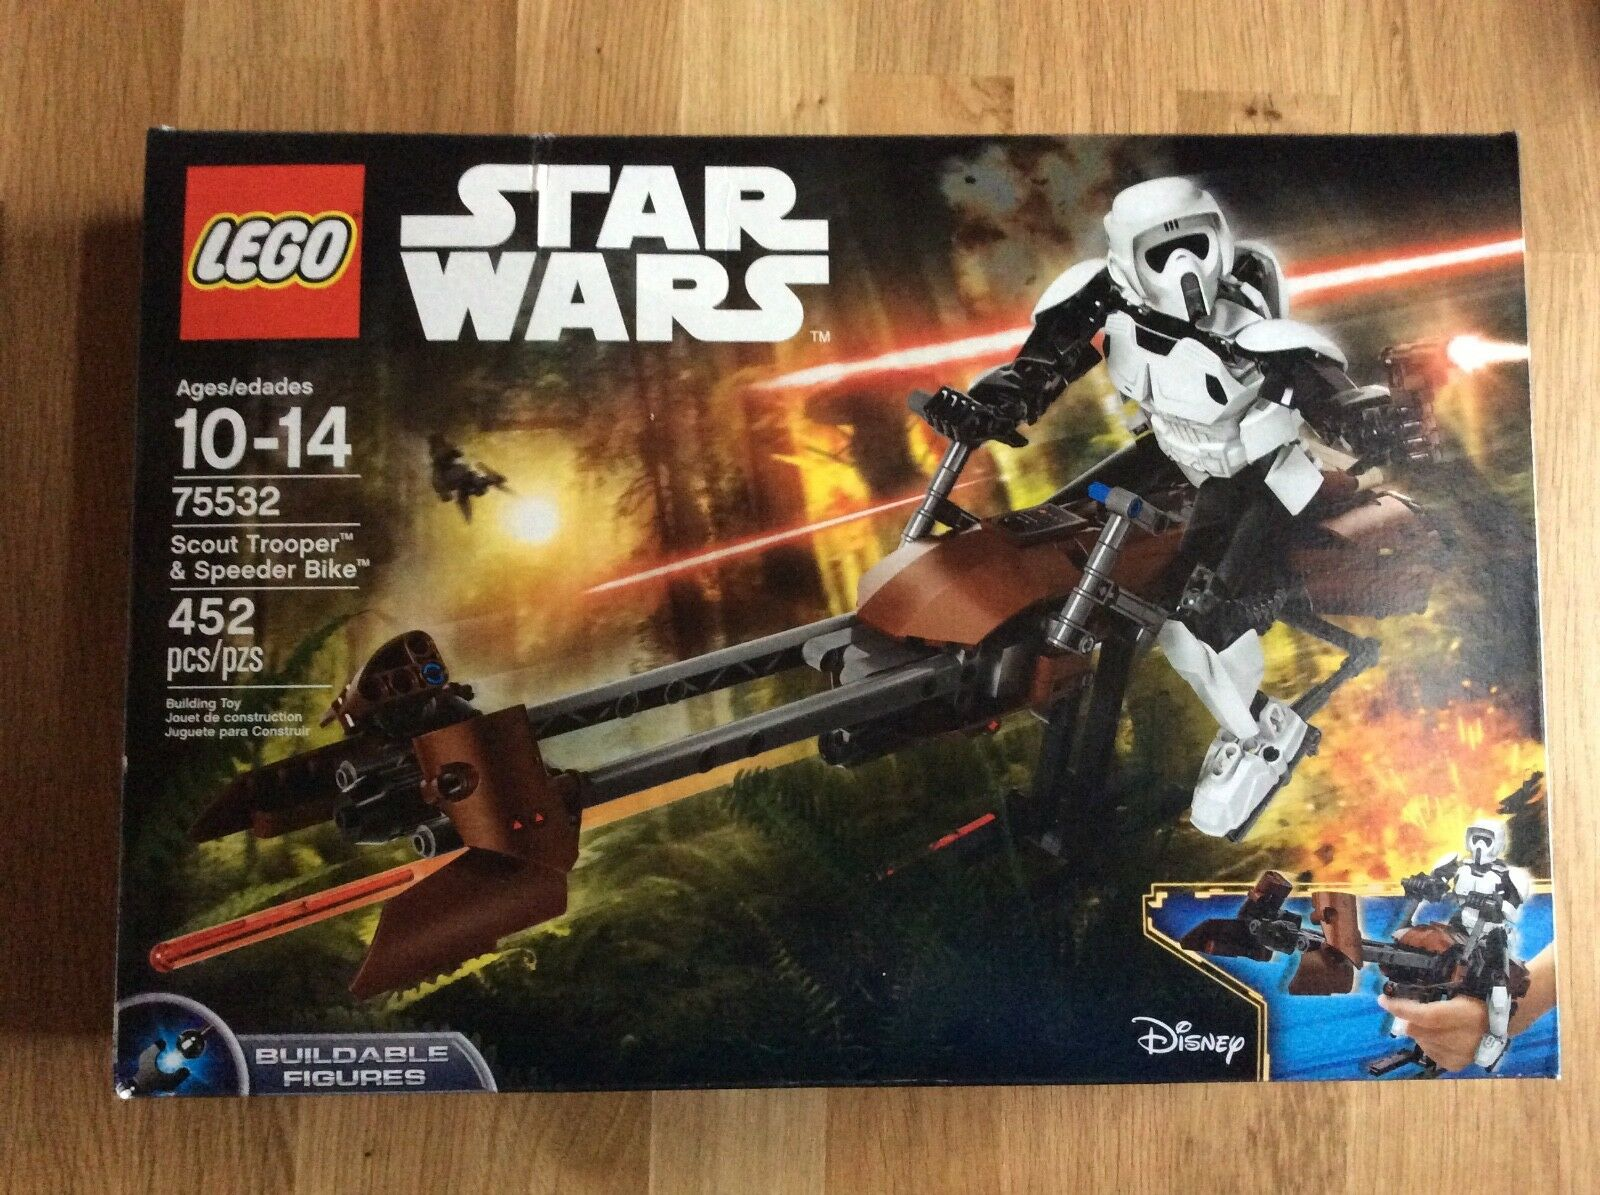 Nouveau  Lego Star Wars Set 75532 SCOUT TROOPER et SPEEDER BIKE superposée Figure  vente directe d'usine